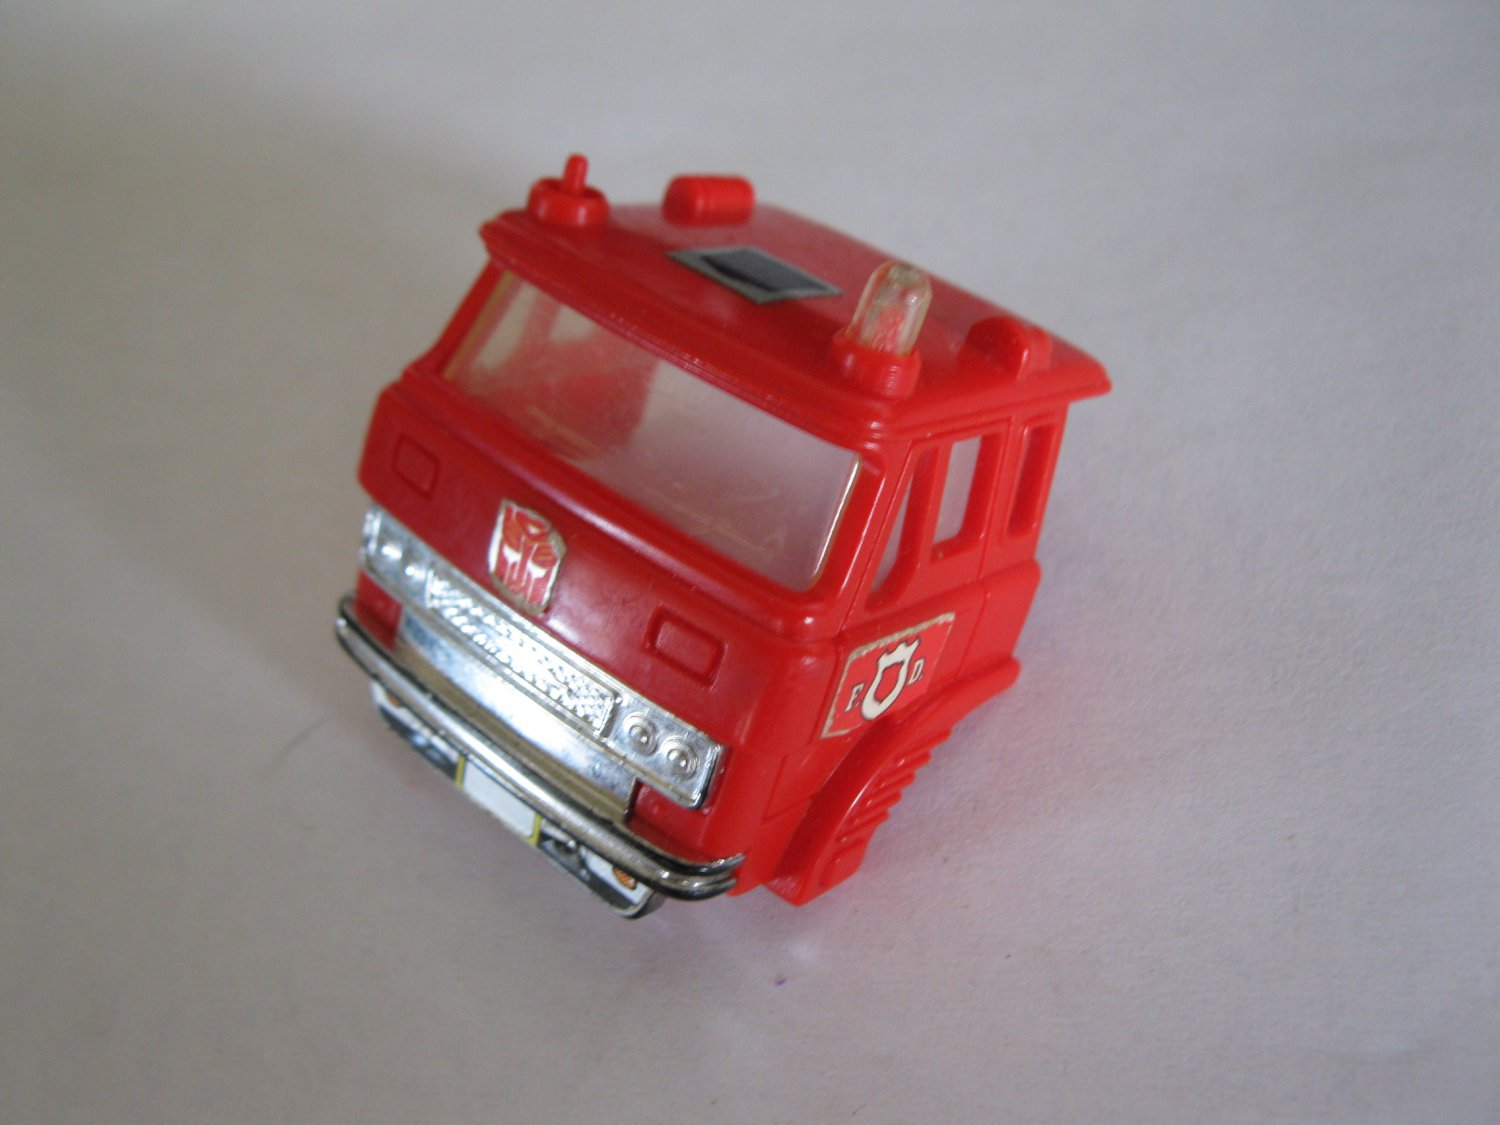 G1 Transformers Action figure part: 1985 Inferno - Truck Cab